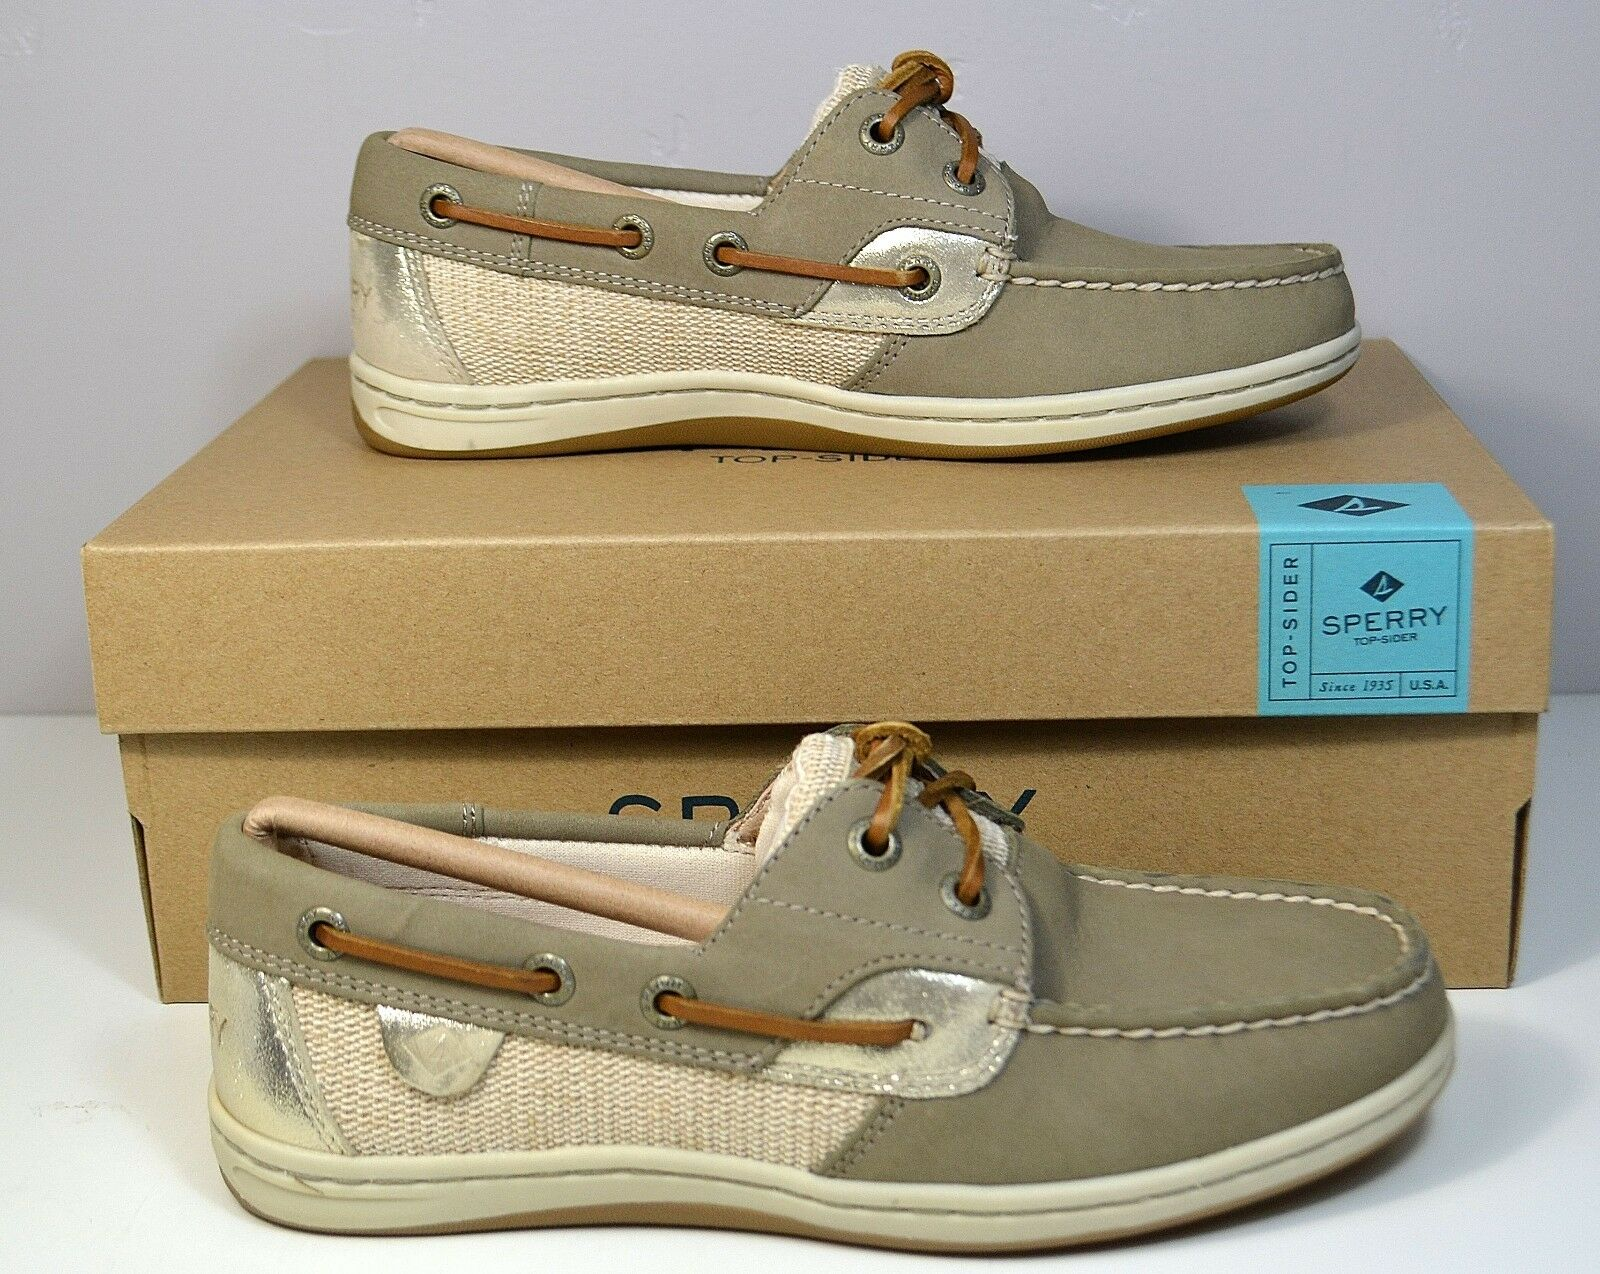 NIB SPERRY TOP SIDER KOIFISH CORE TAUPE PLAT 5 BOAT SHOES FLATS SZ 5 PLAT d8a2e9